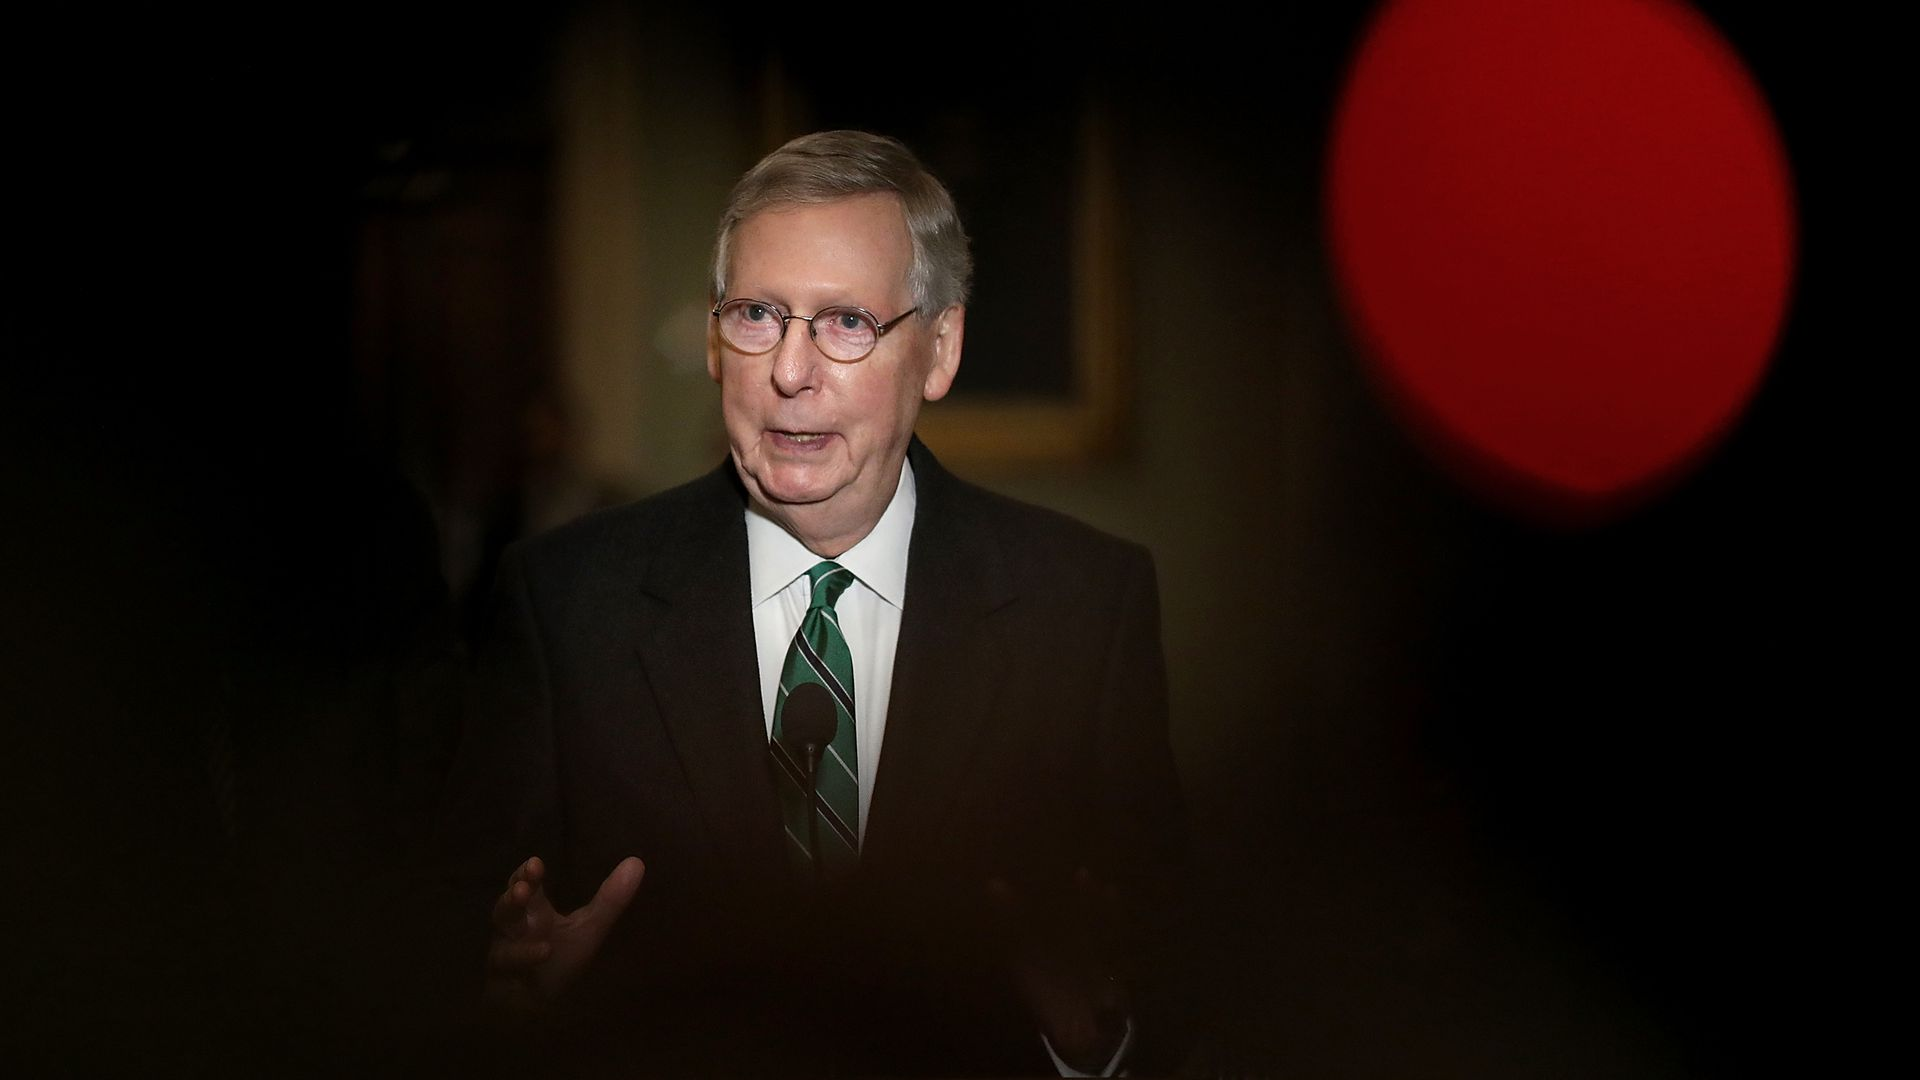 Mitch McConnell stand in a spotlight surrounded by darkness